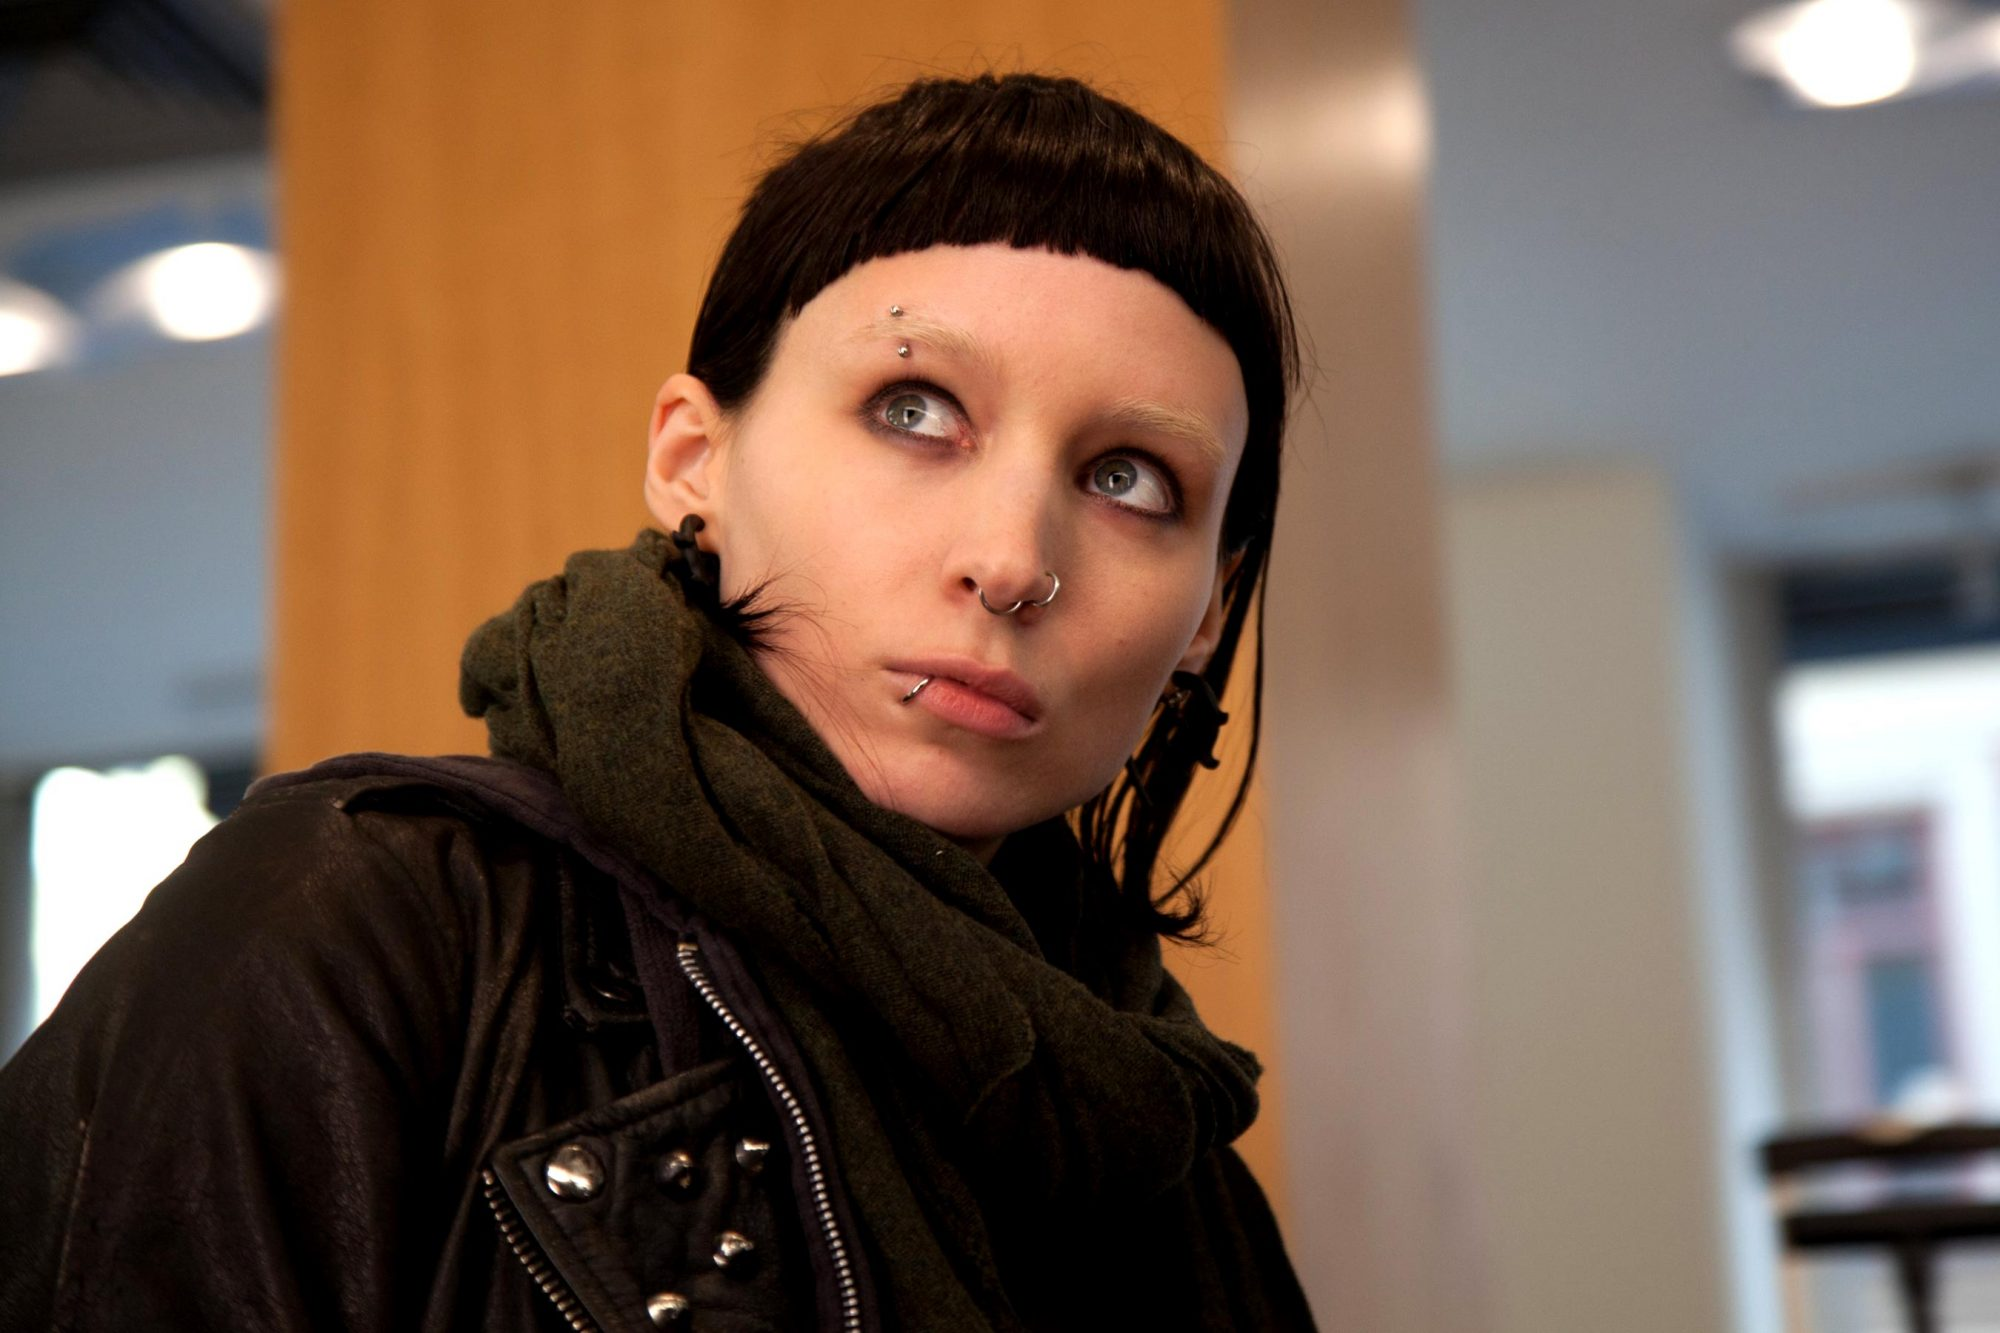 The Girl with the Dragon Tattoo (2011)Rooney Mara